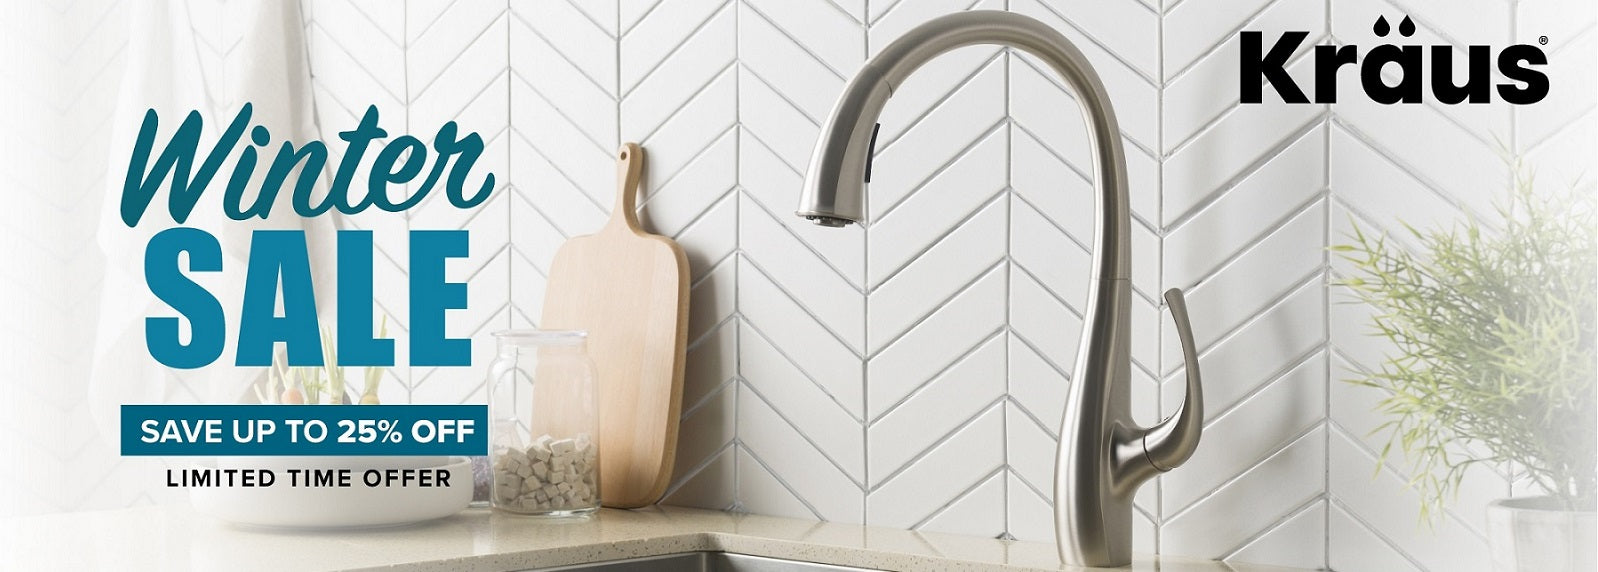 Kraus Winter Sale 25% off, Kraus Sinks Cheap, Kraus Faucets Discounted